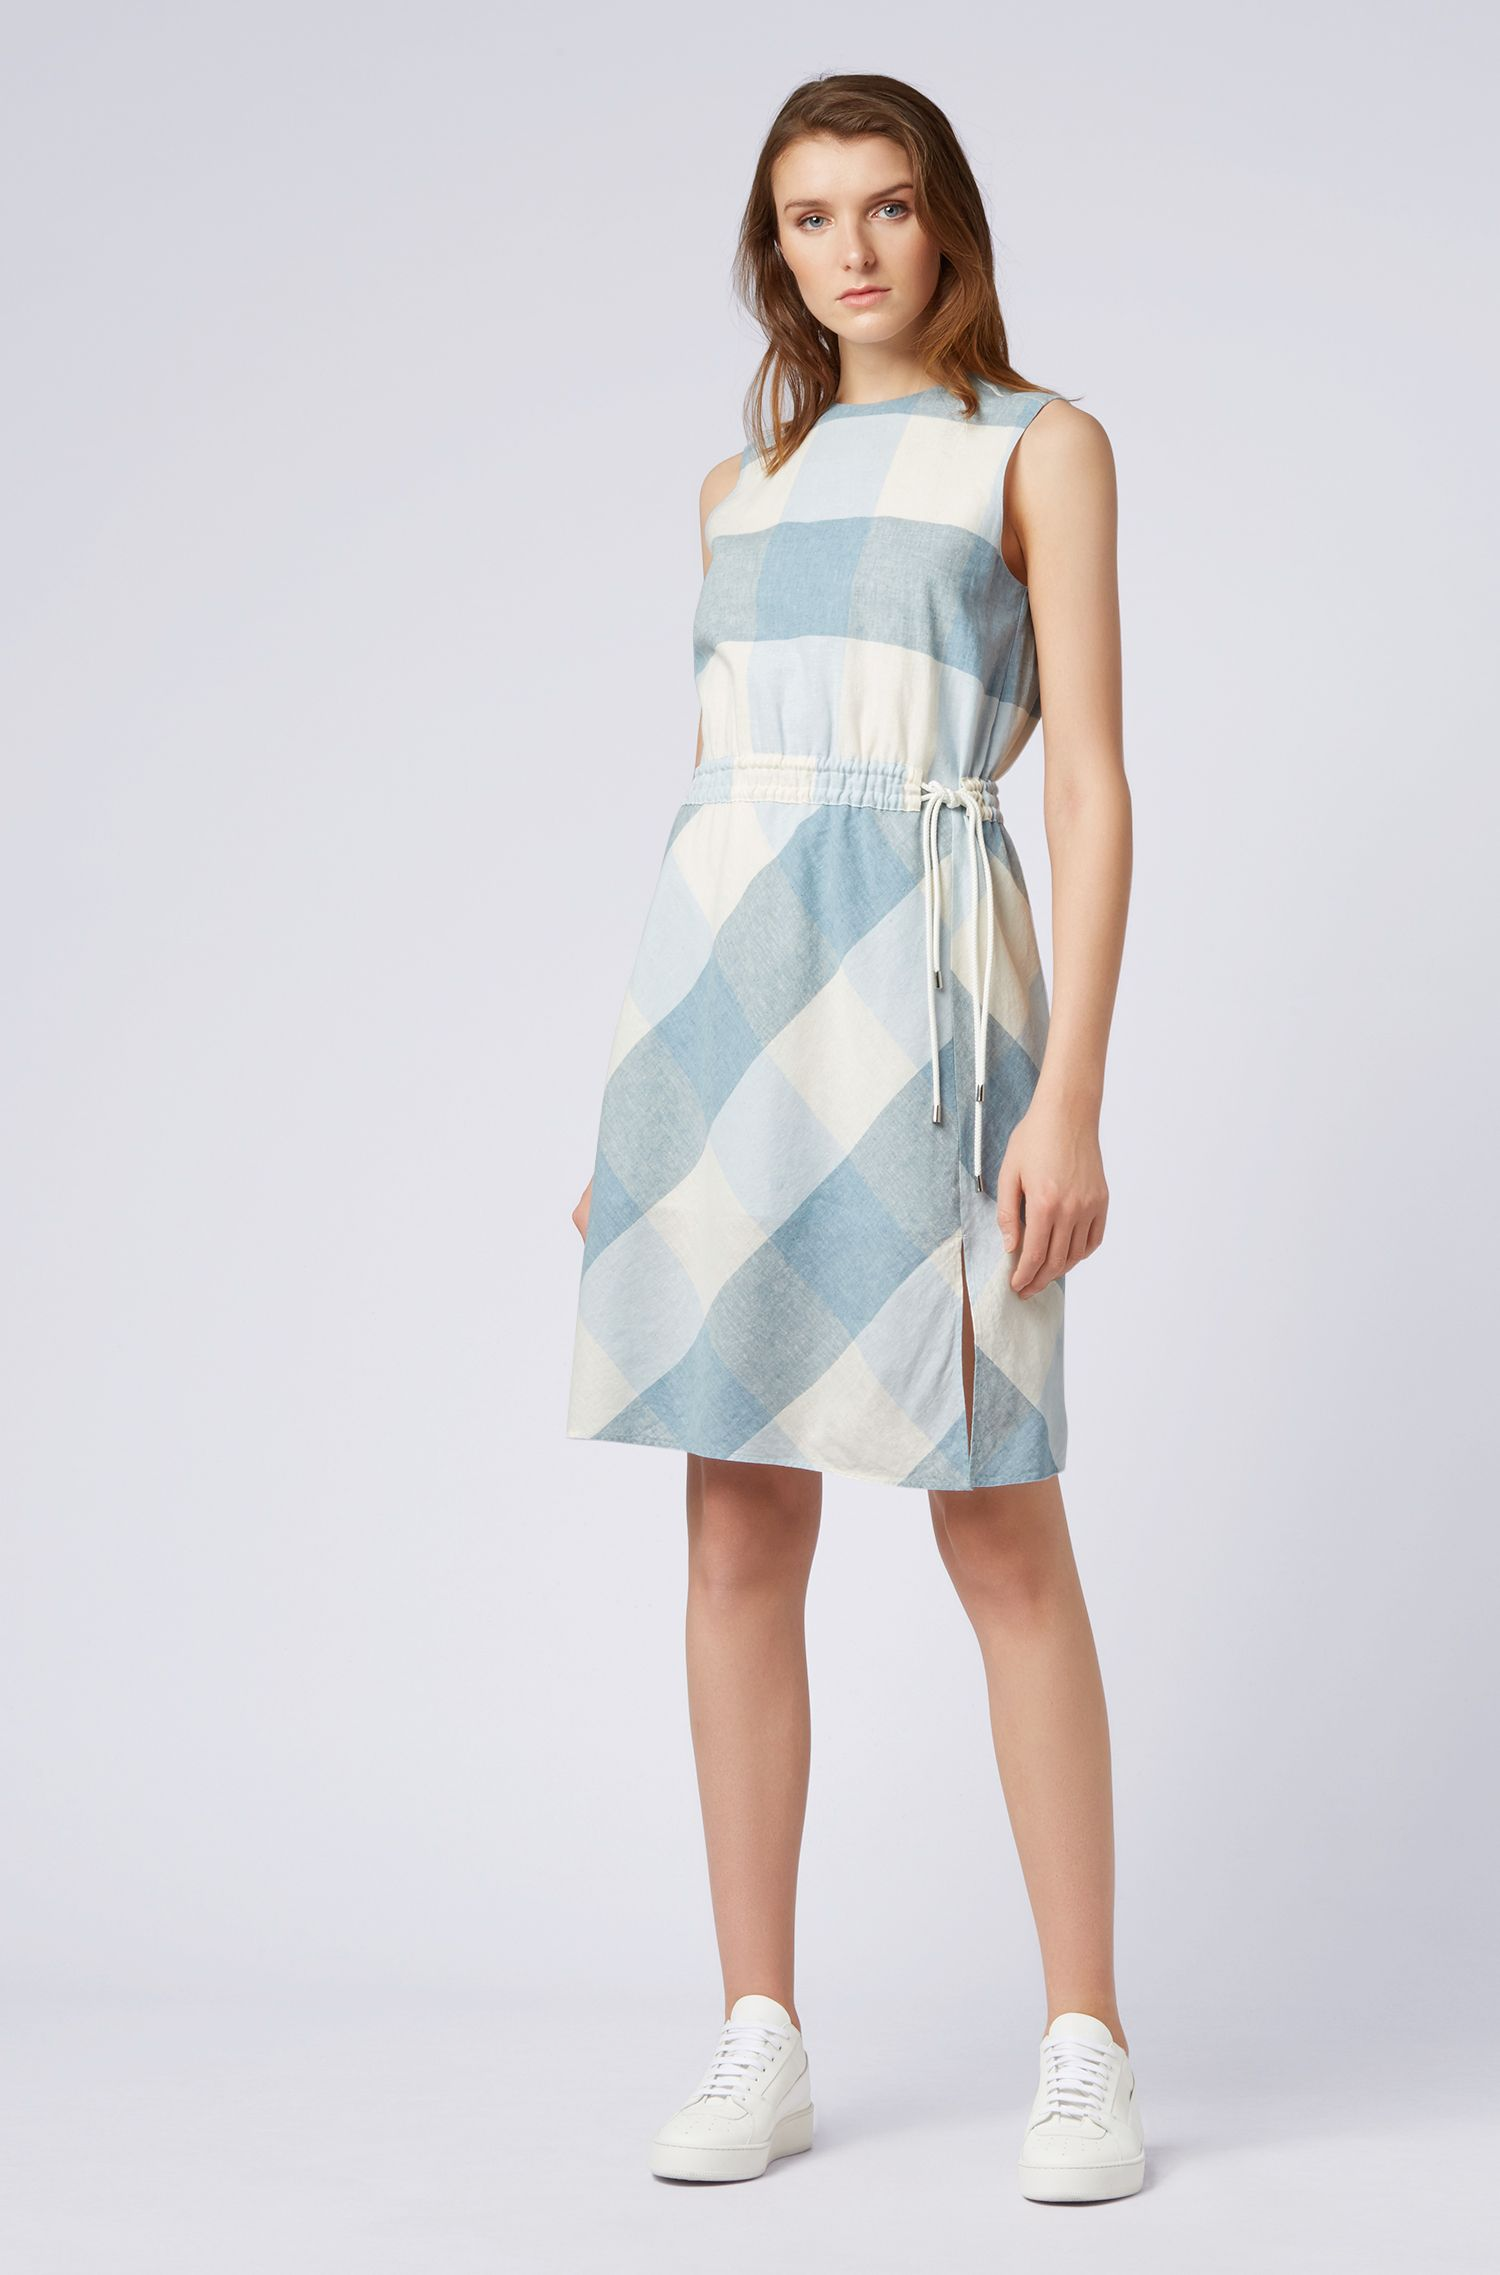 Linen-blend checked dress with drawstring waist, Patterned